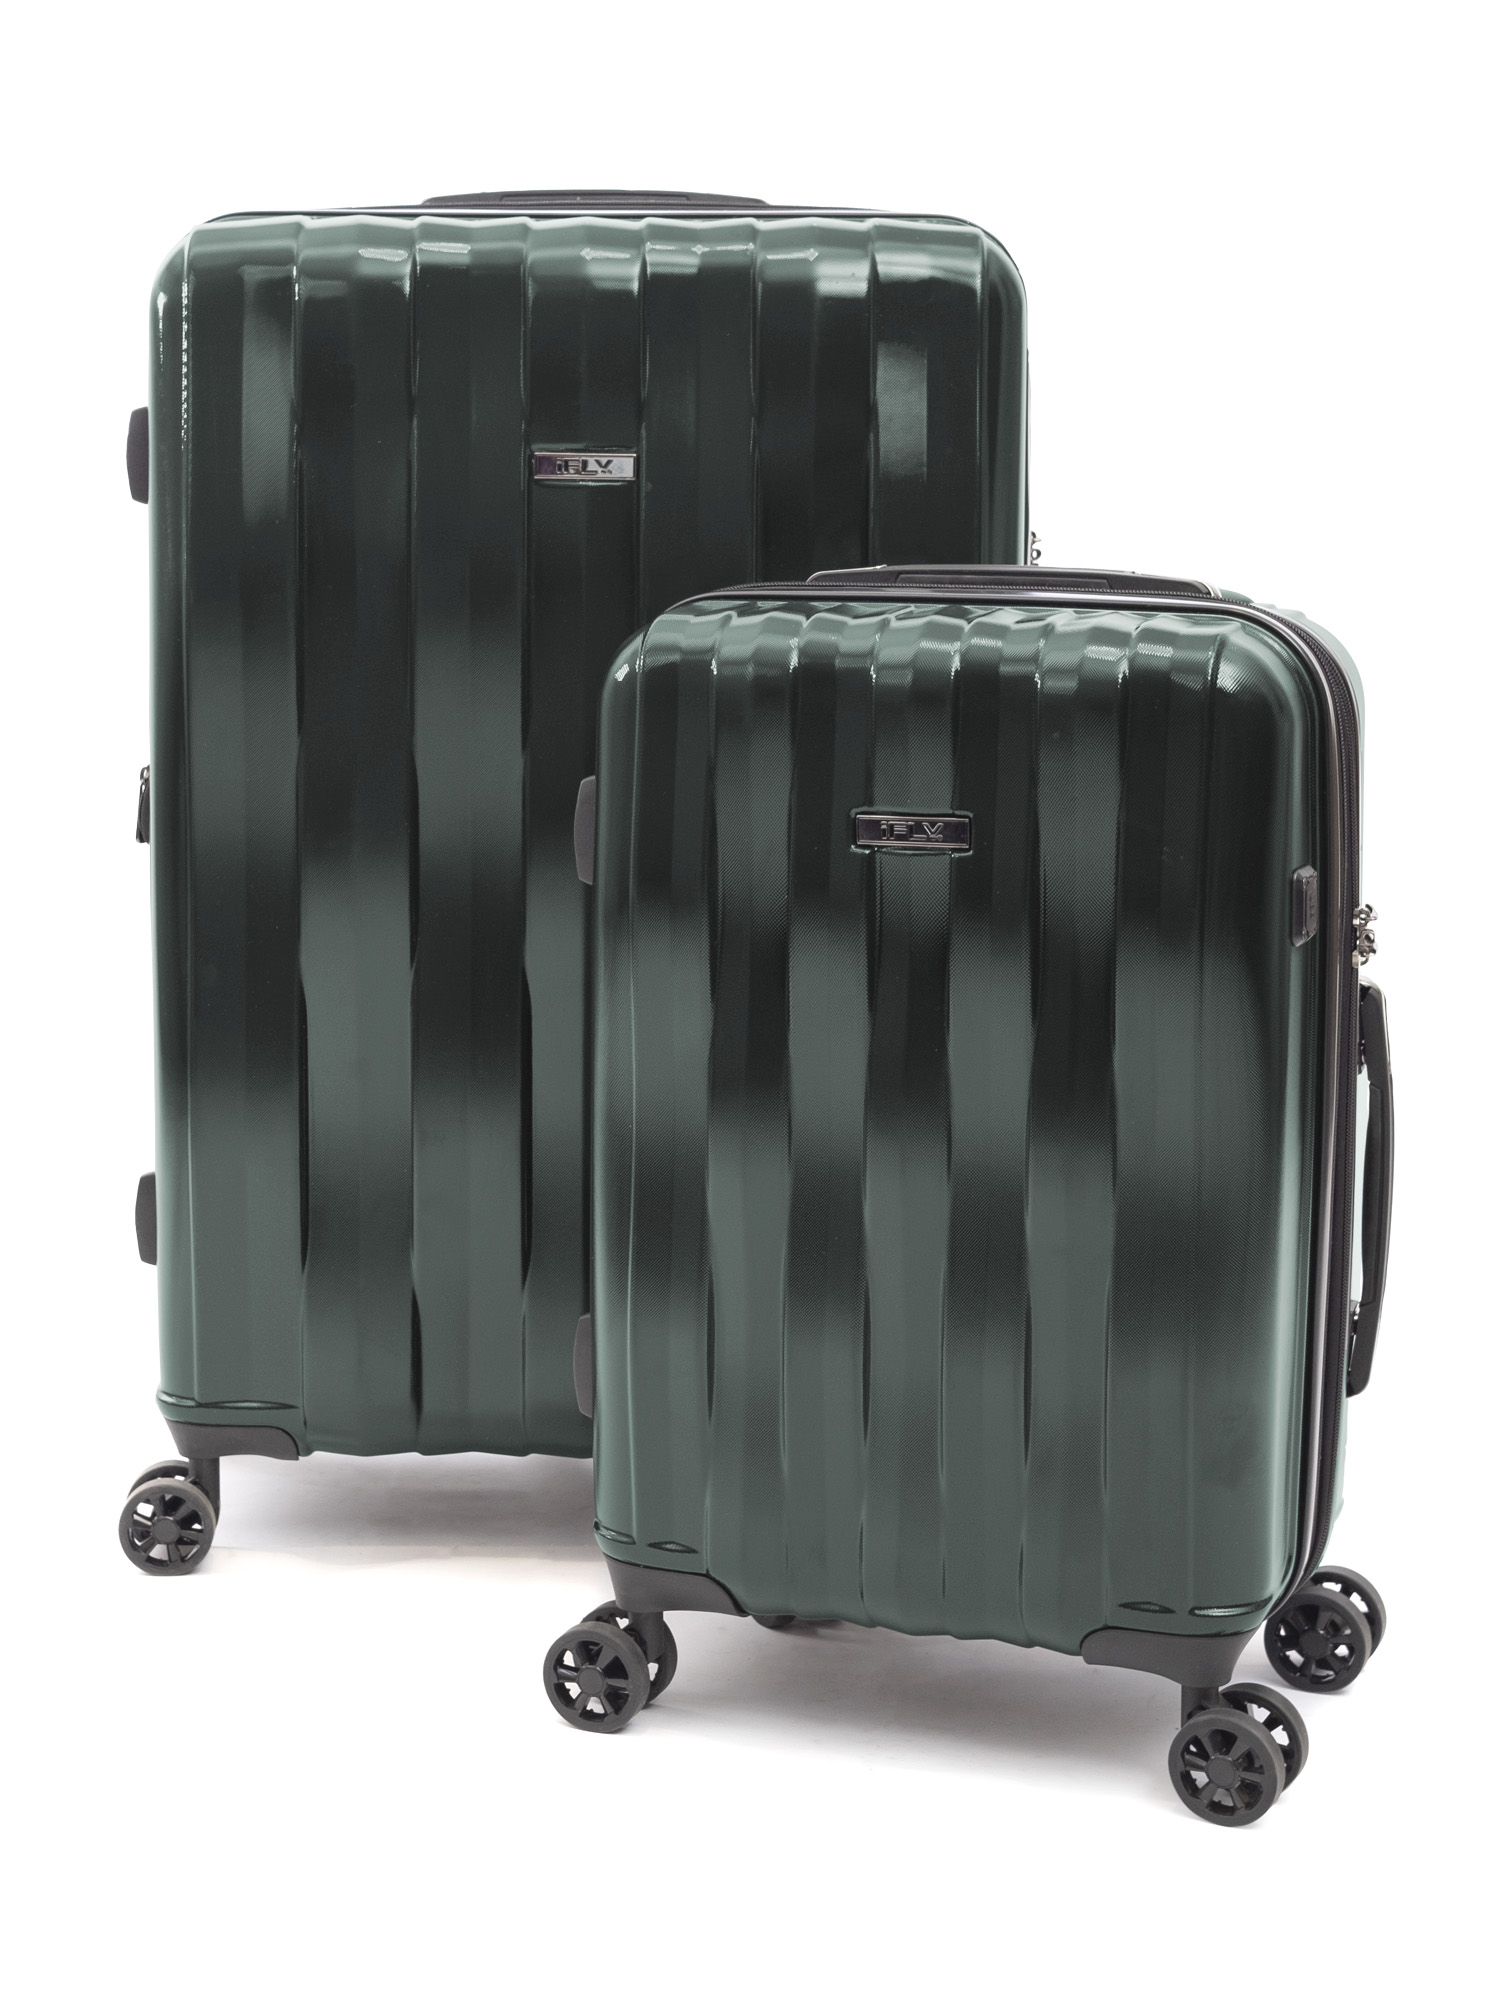 iFLY Hard Sided Luggage Synergy 2 piece set, Green